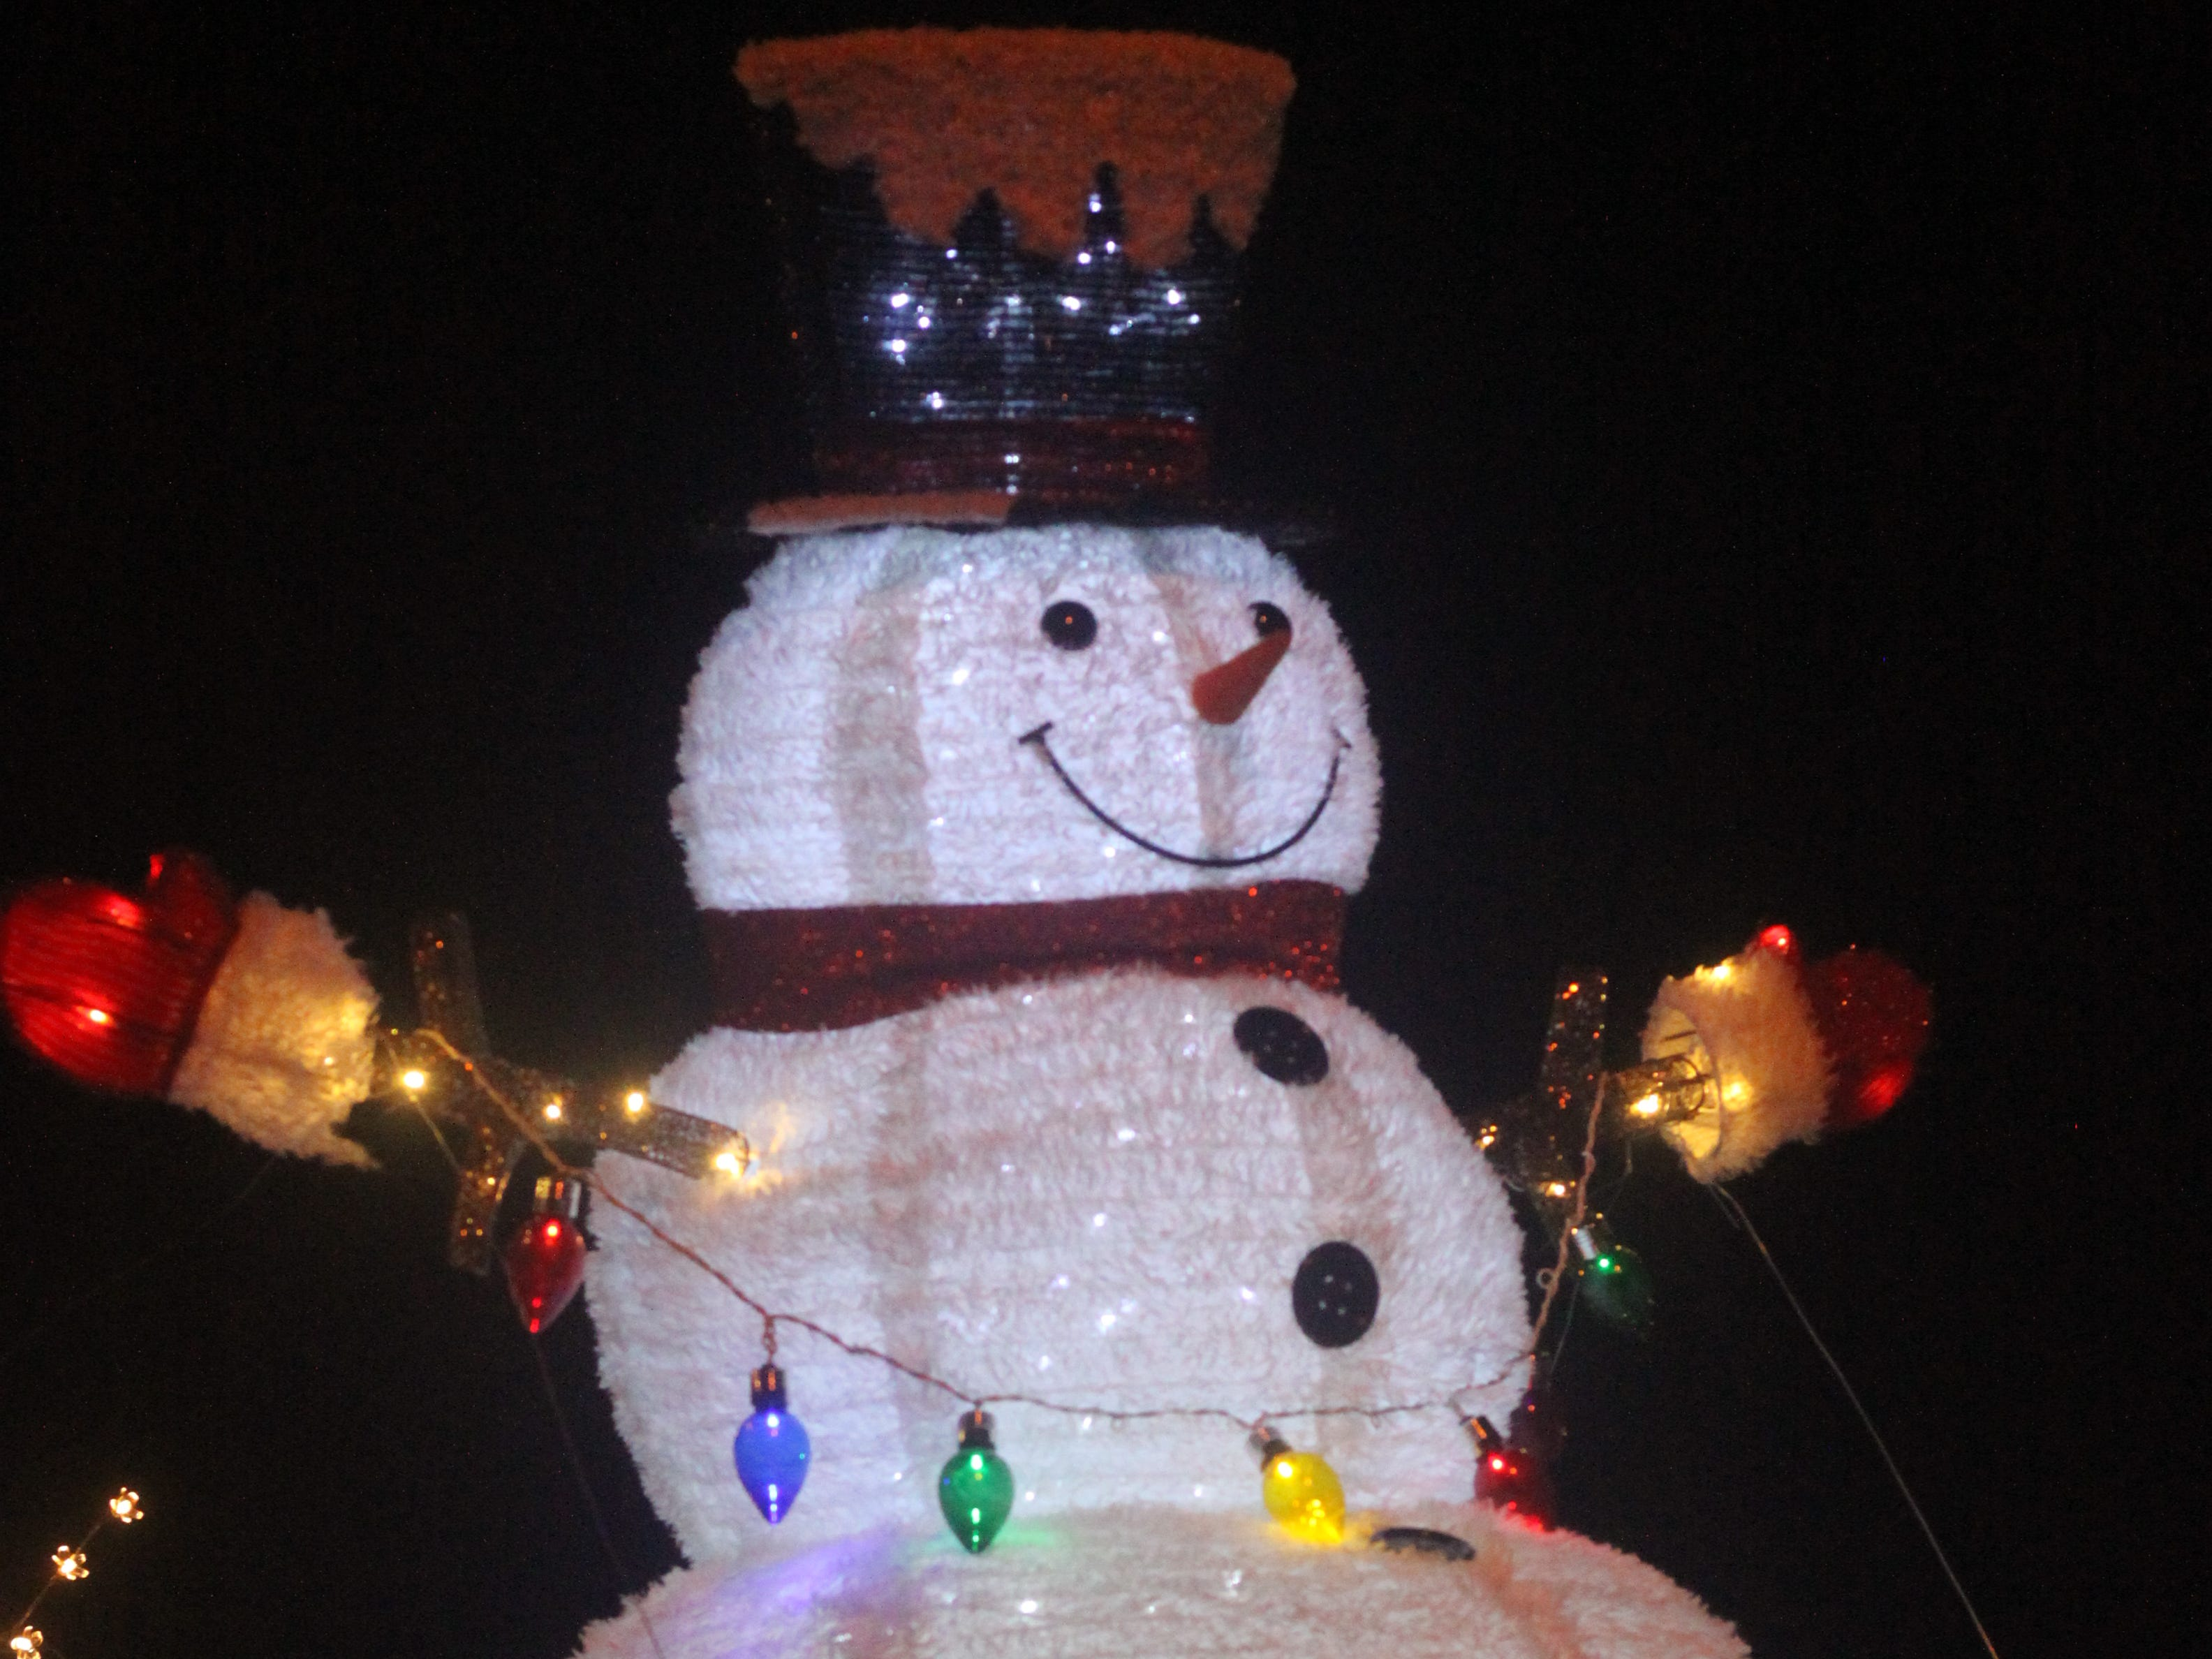 Frosty the Snowman is on a float during the Light Parade, Nov. 24, 2018 in downtown Carlsbad.